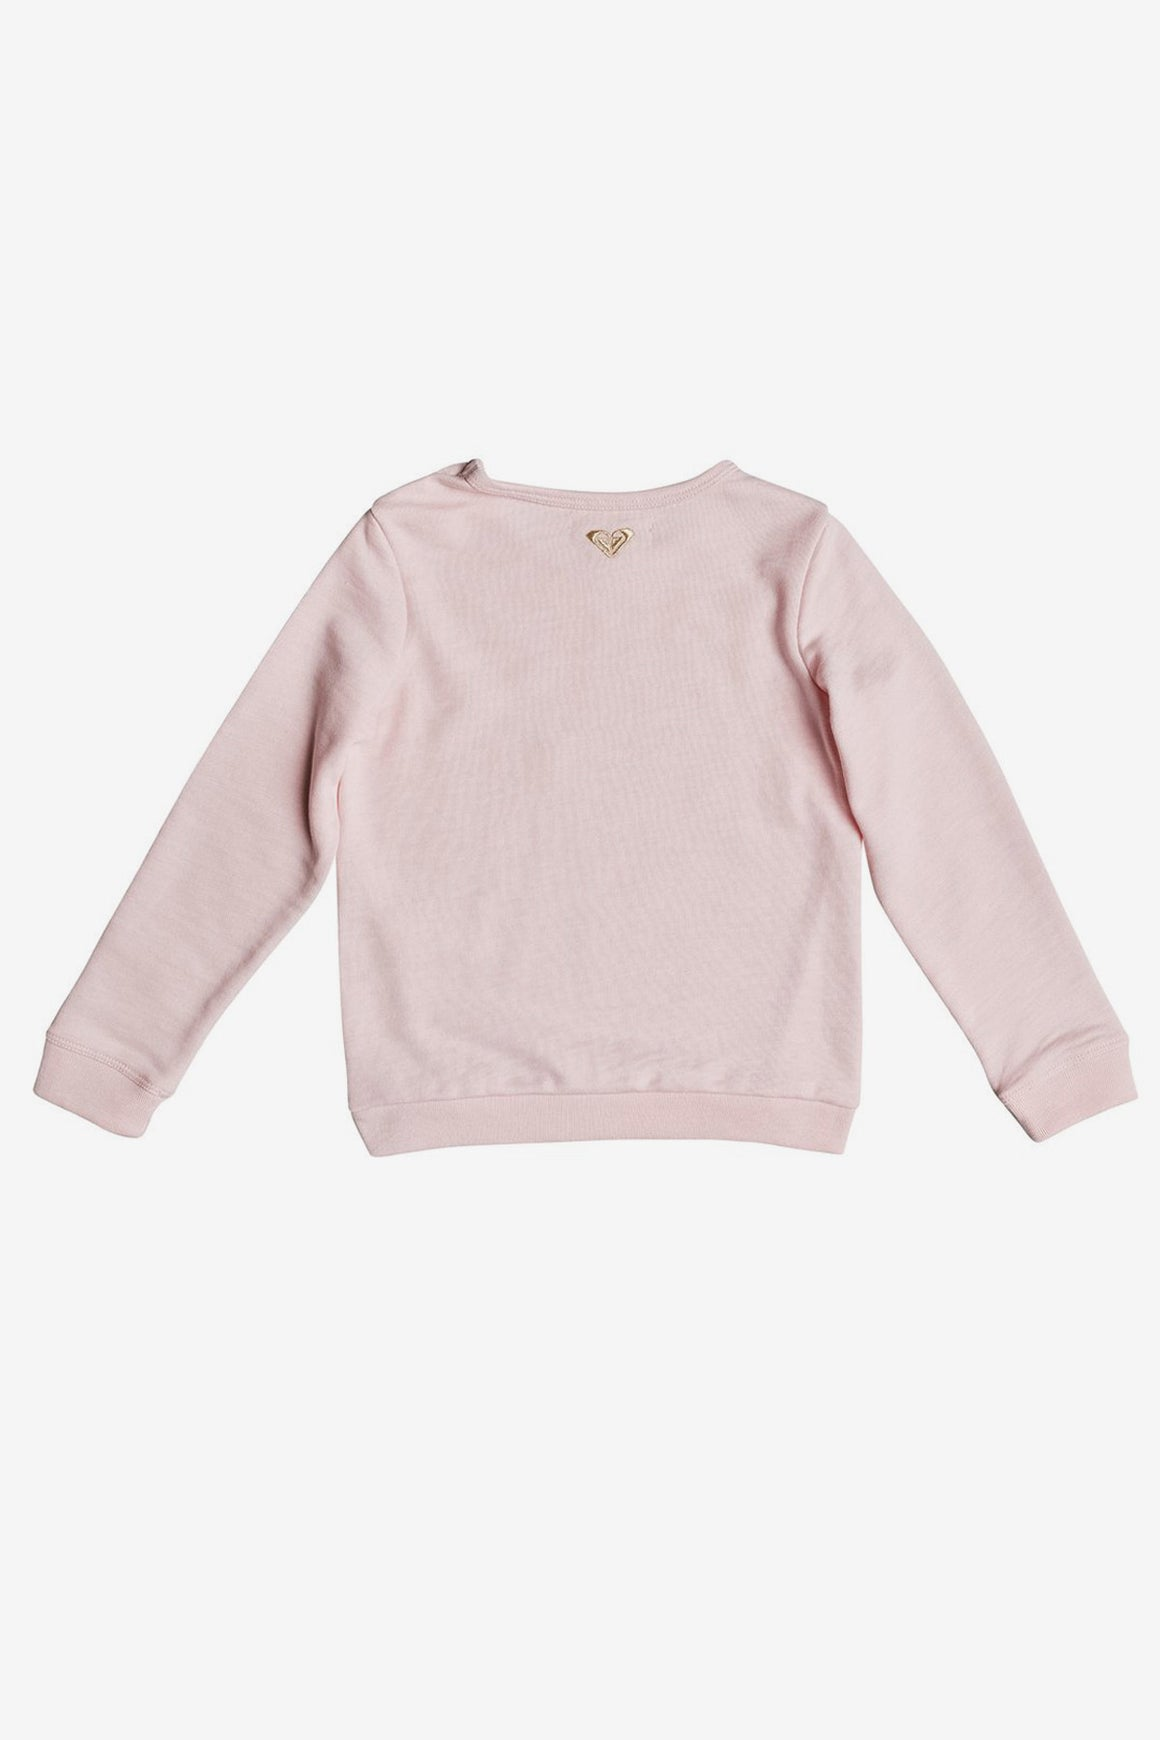 Roxy Palms Valley Llama Sweatshirt